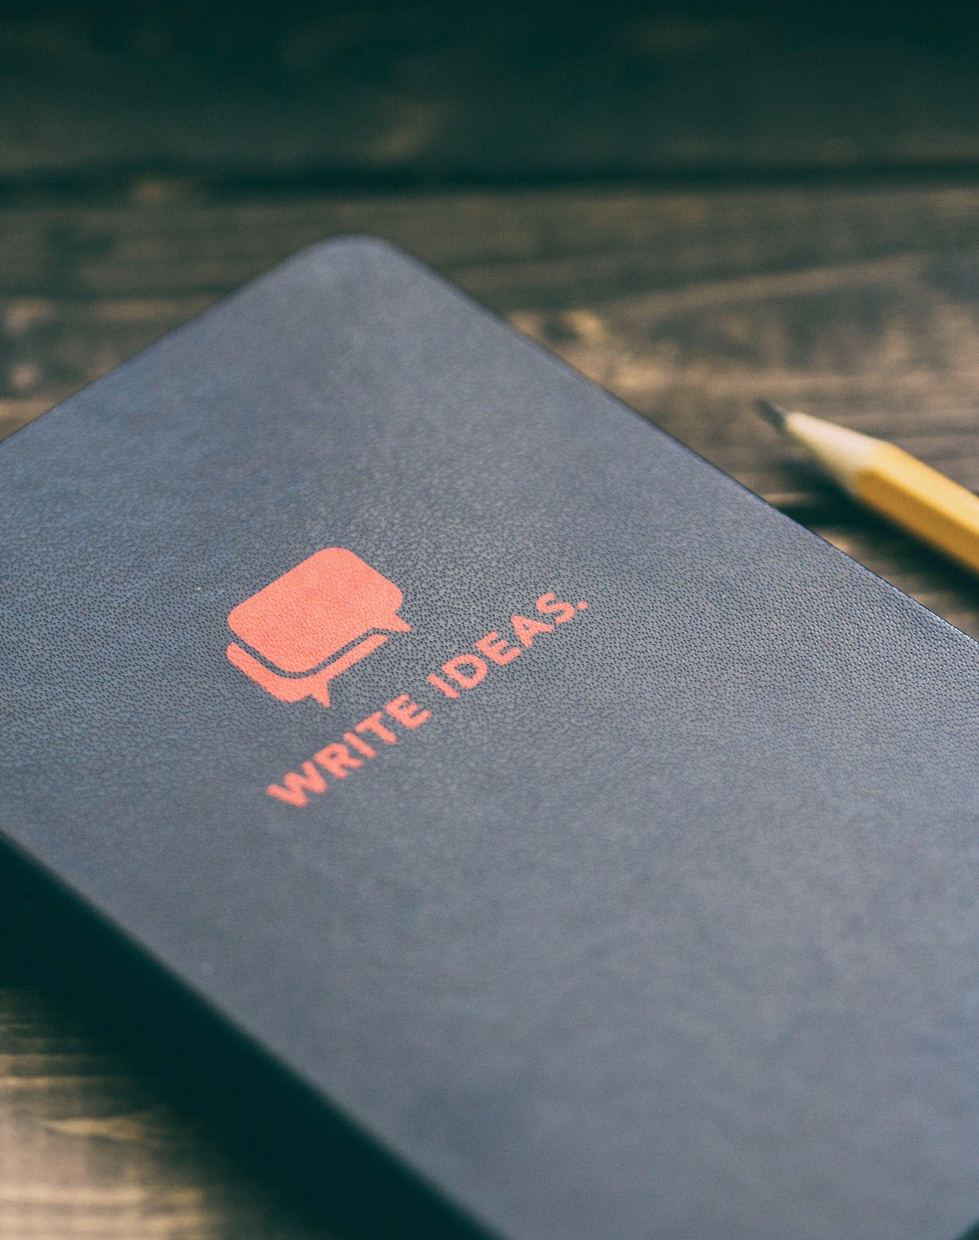 How To Write A School Blog Post That Gets Results